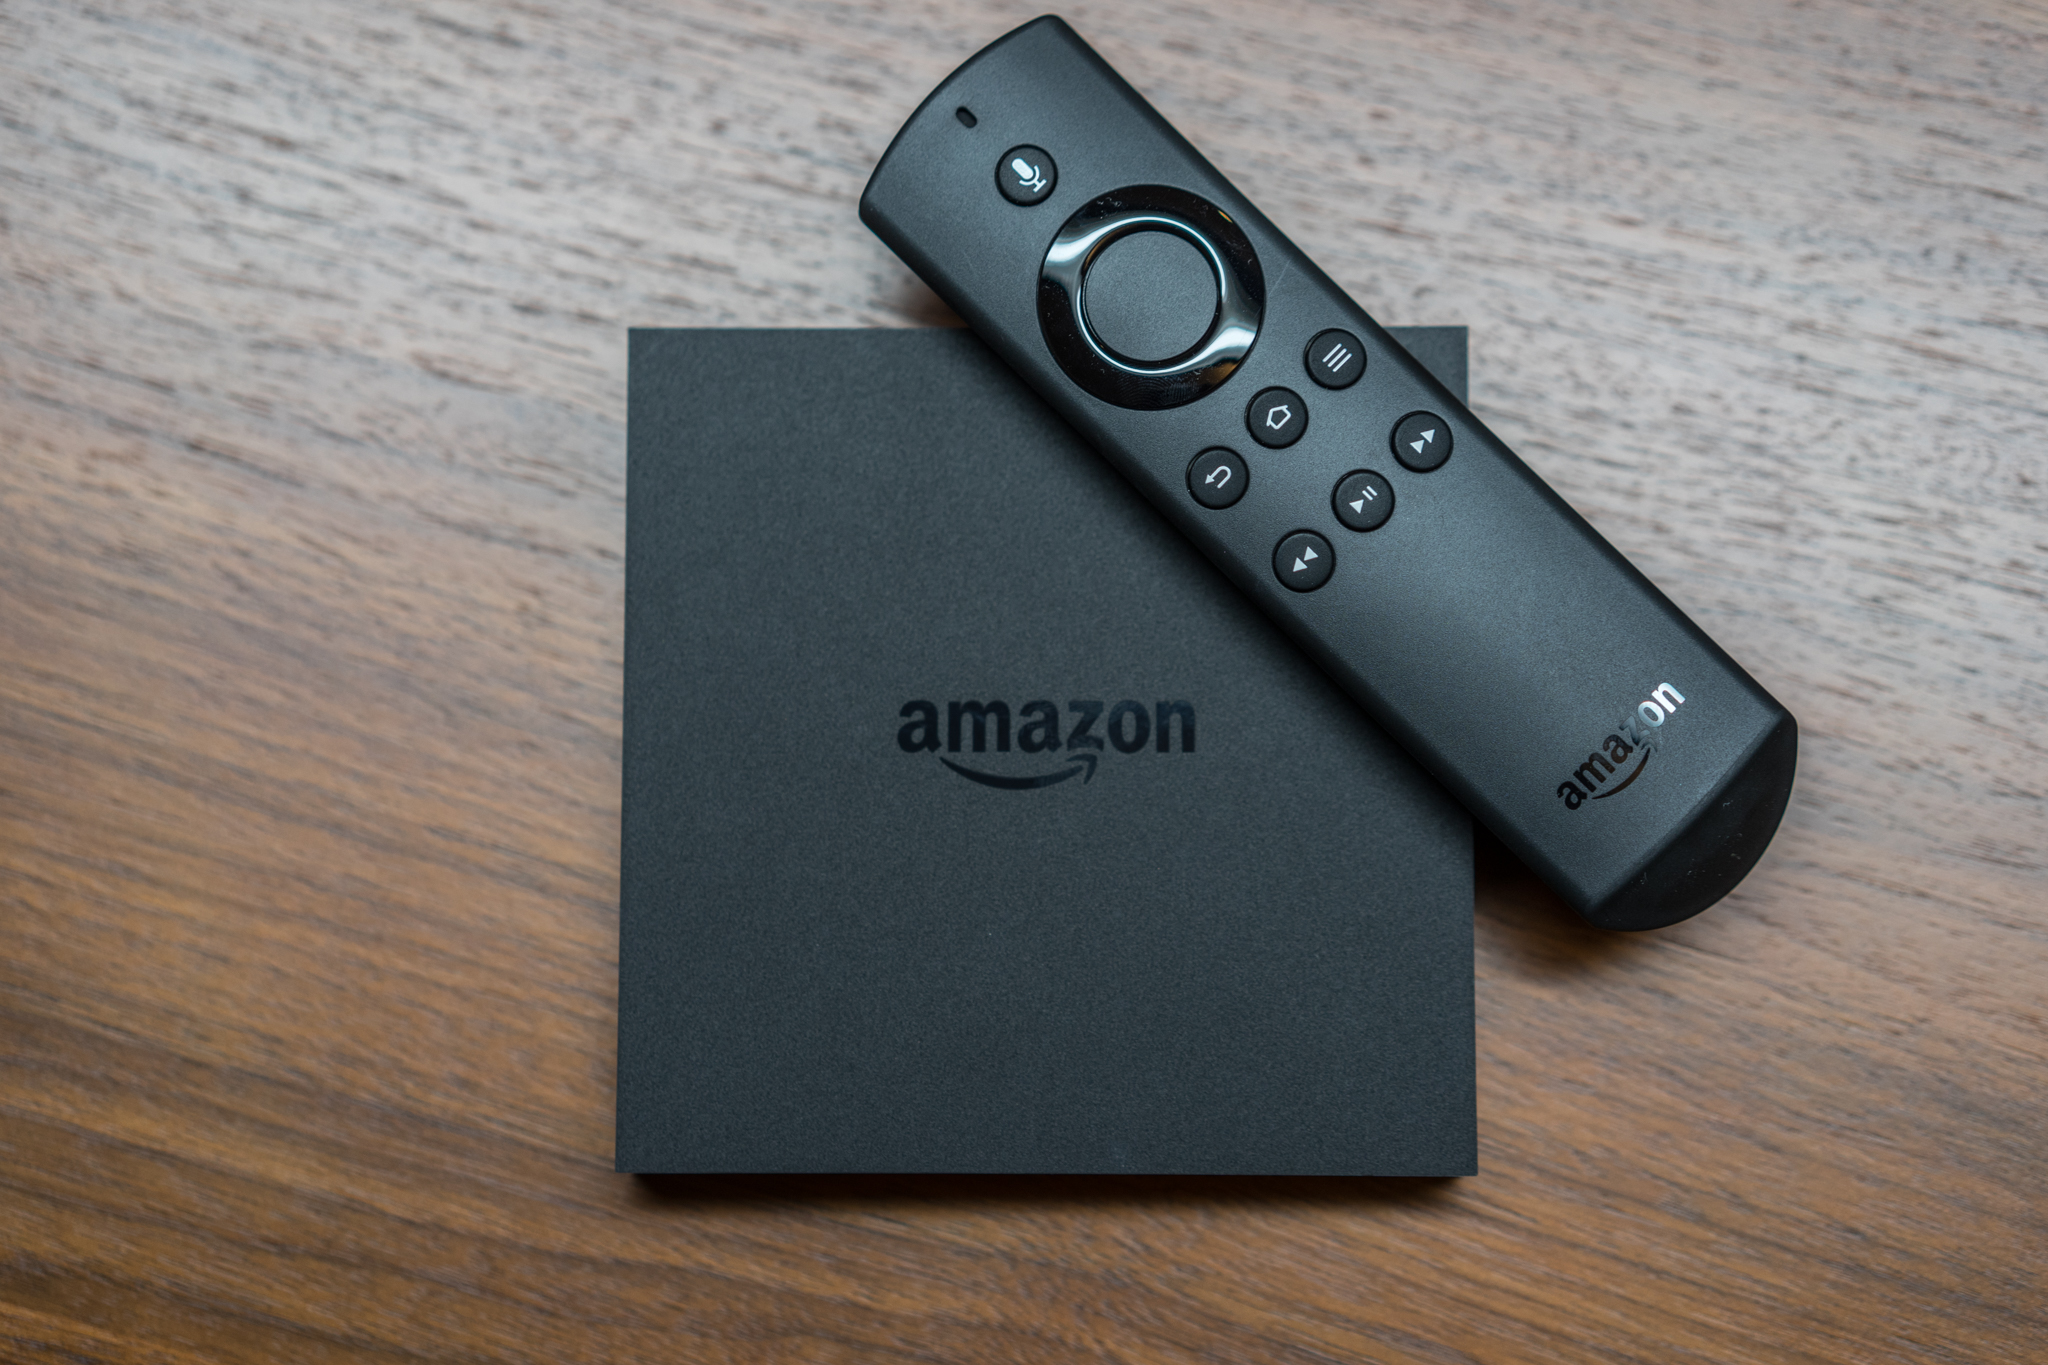 The Amazon Fire TV can pull in Internet video compressed with HEVC/H.265 technology, but Amazon is also backing development of a competing technology.